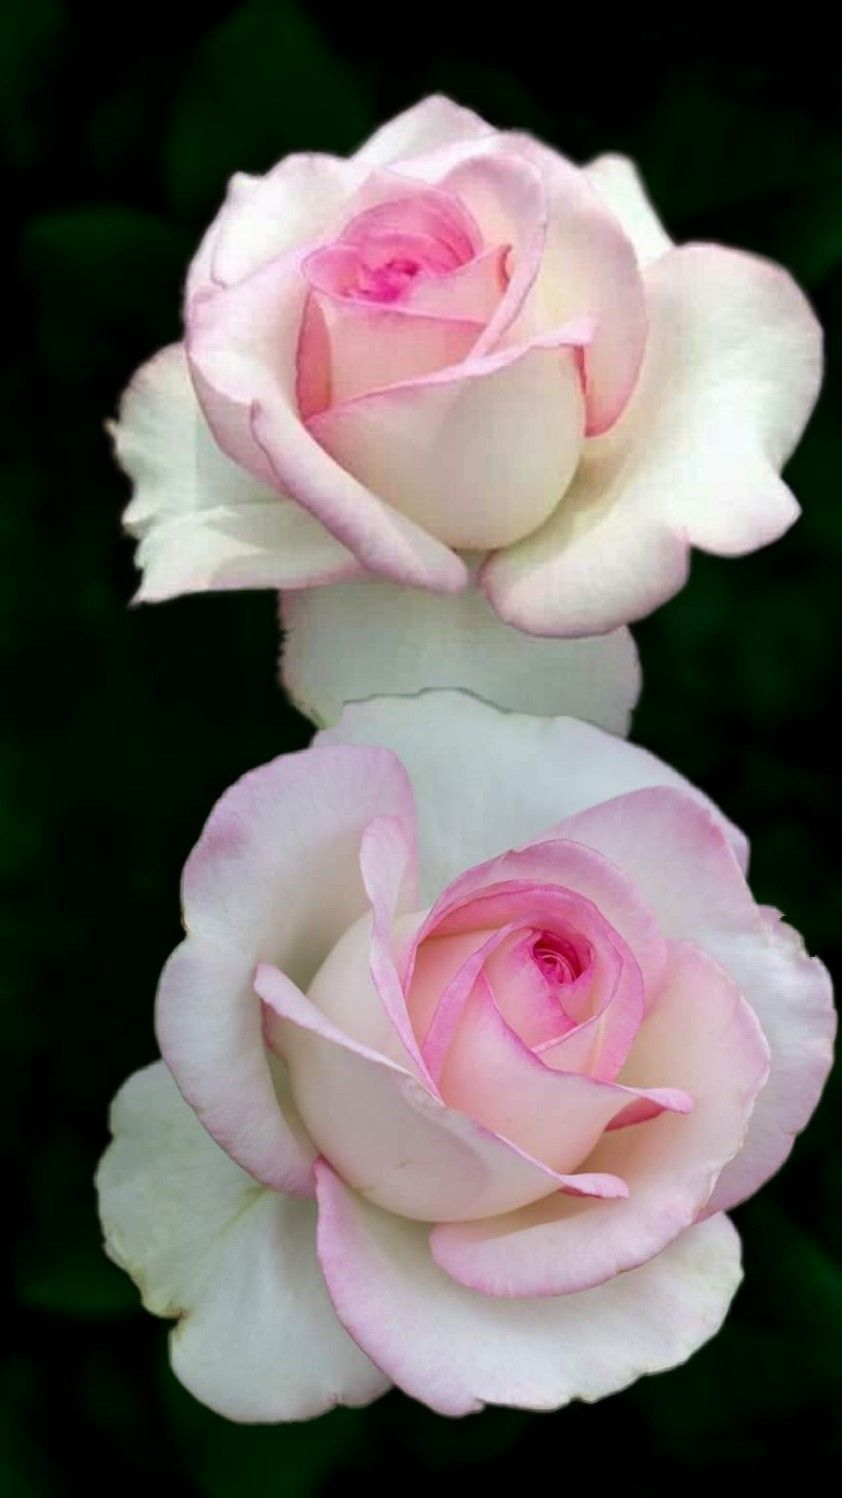 Pin By My Anh On 1 A File General Rose Seeds Beautiful Roses Unusual Flowers